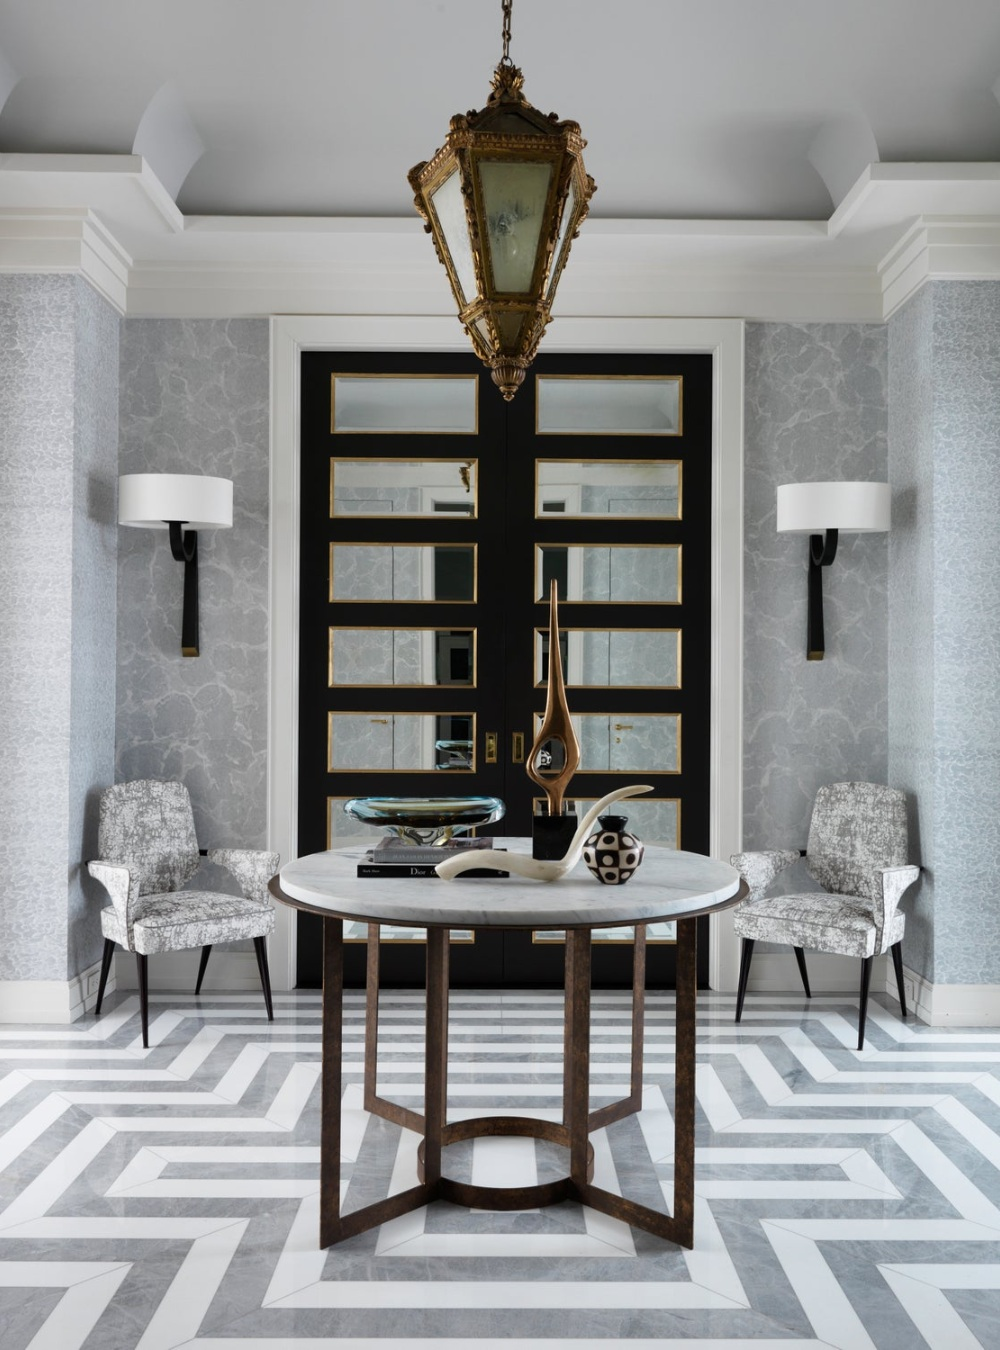 entryway lighting ideas 22 Outrageously Stunning Entryway Lighting Ideas 22 Outrageously Stunning Entryway Lighting Ideas 1 21